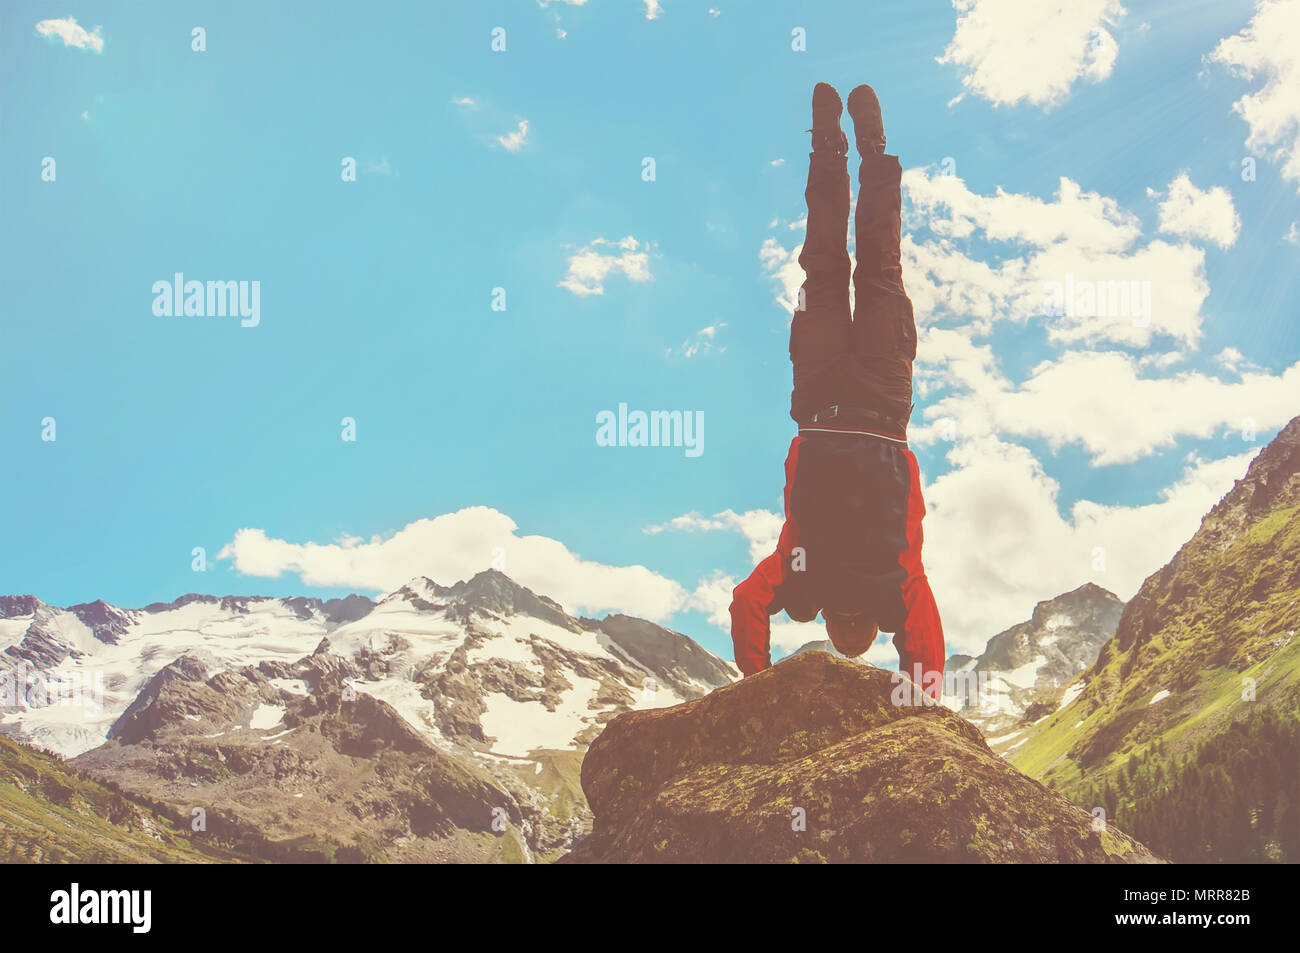 Practice gymnastic exercises in the open air in nature. Stuntman doing a dangerous trick on the edge of a precipice high in the mountains, handstand.  - Stock Image